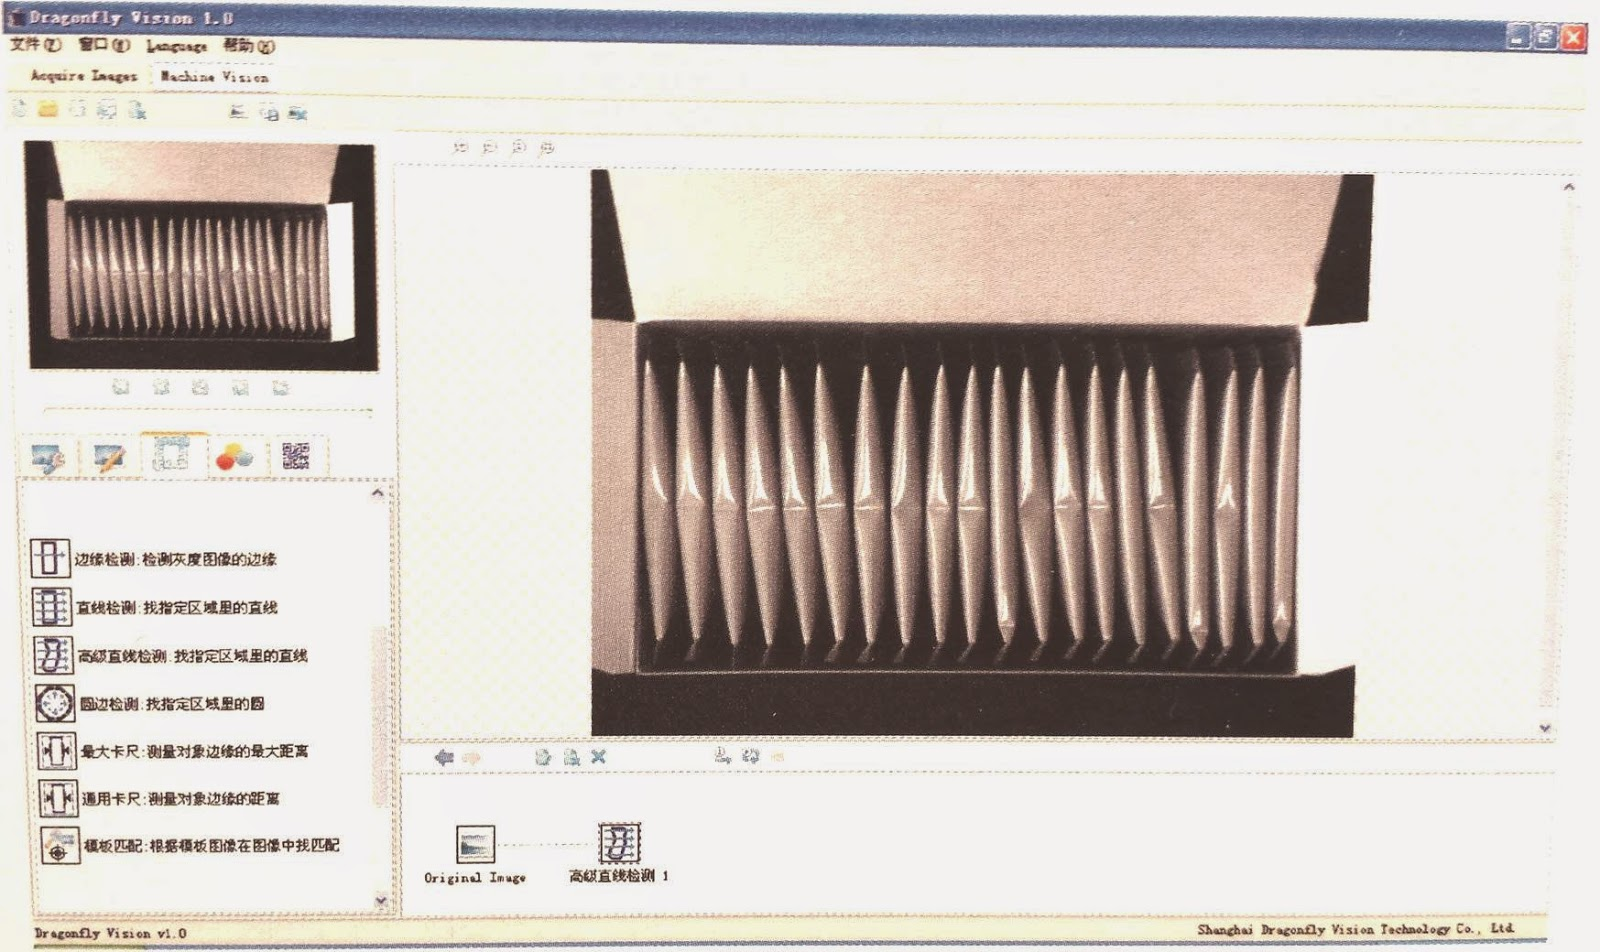 The image shows the DMVTec software doing quantity integrity inspection (aka counting tea bags)